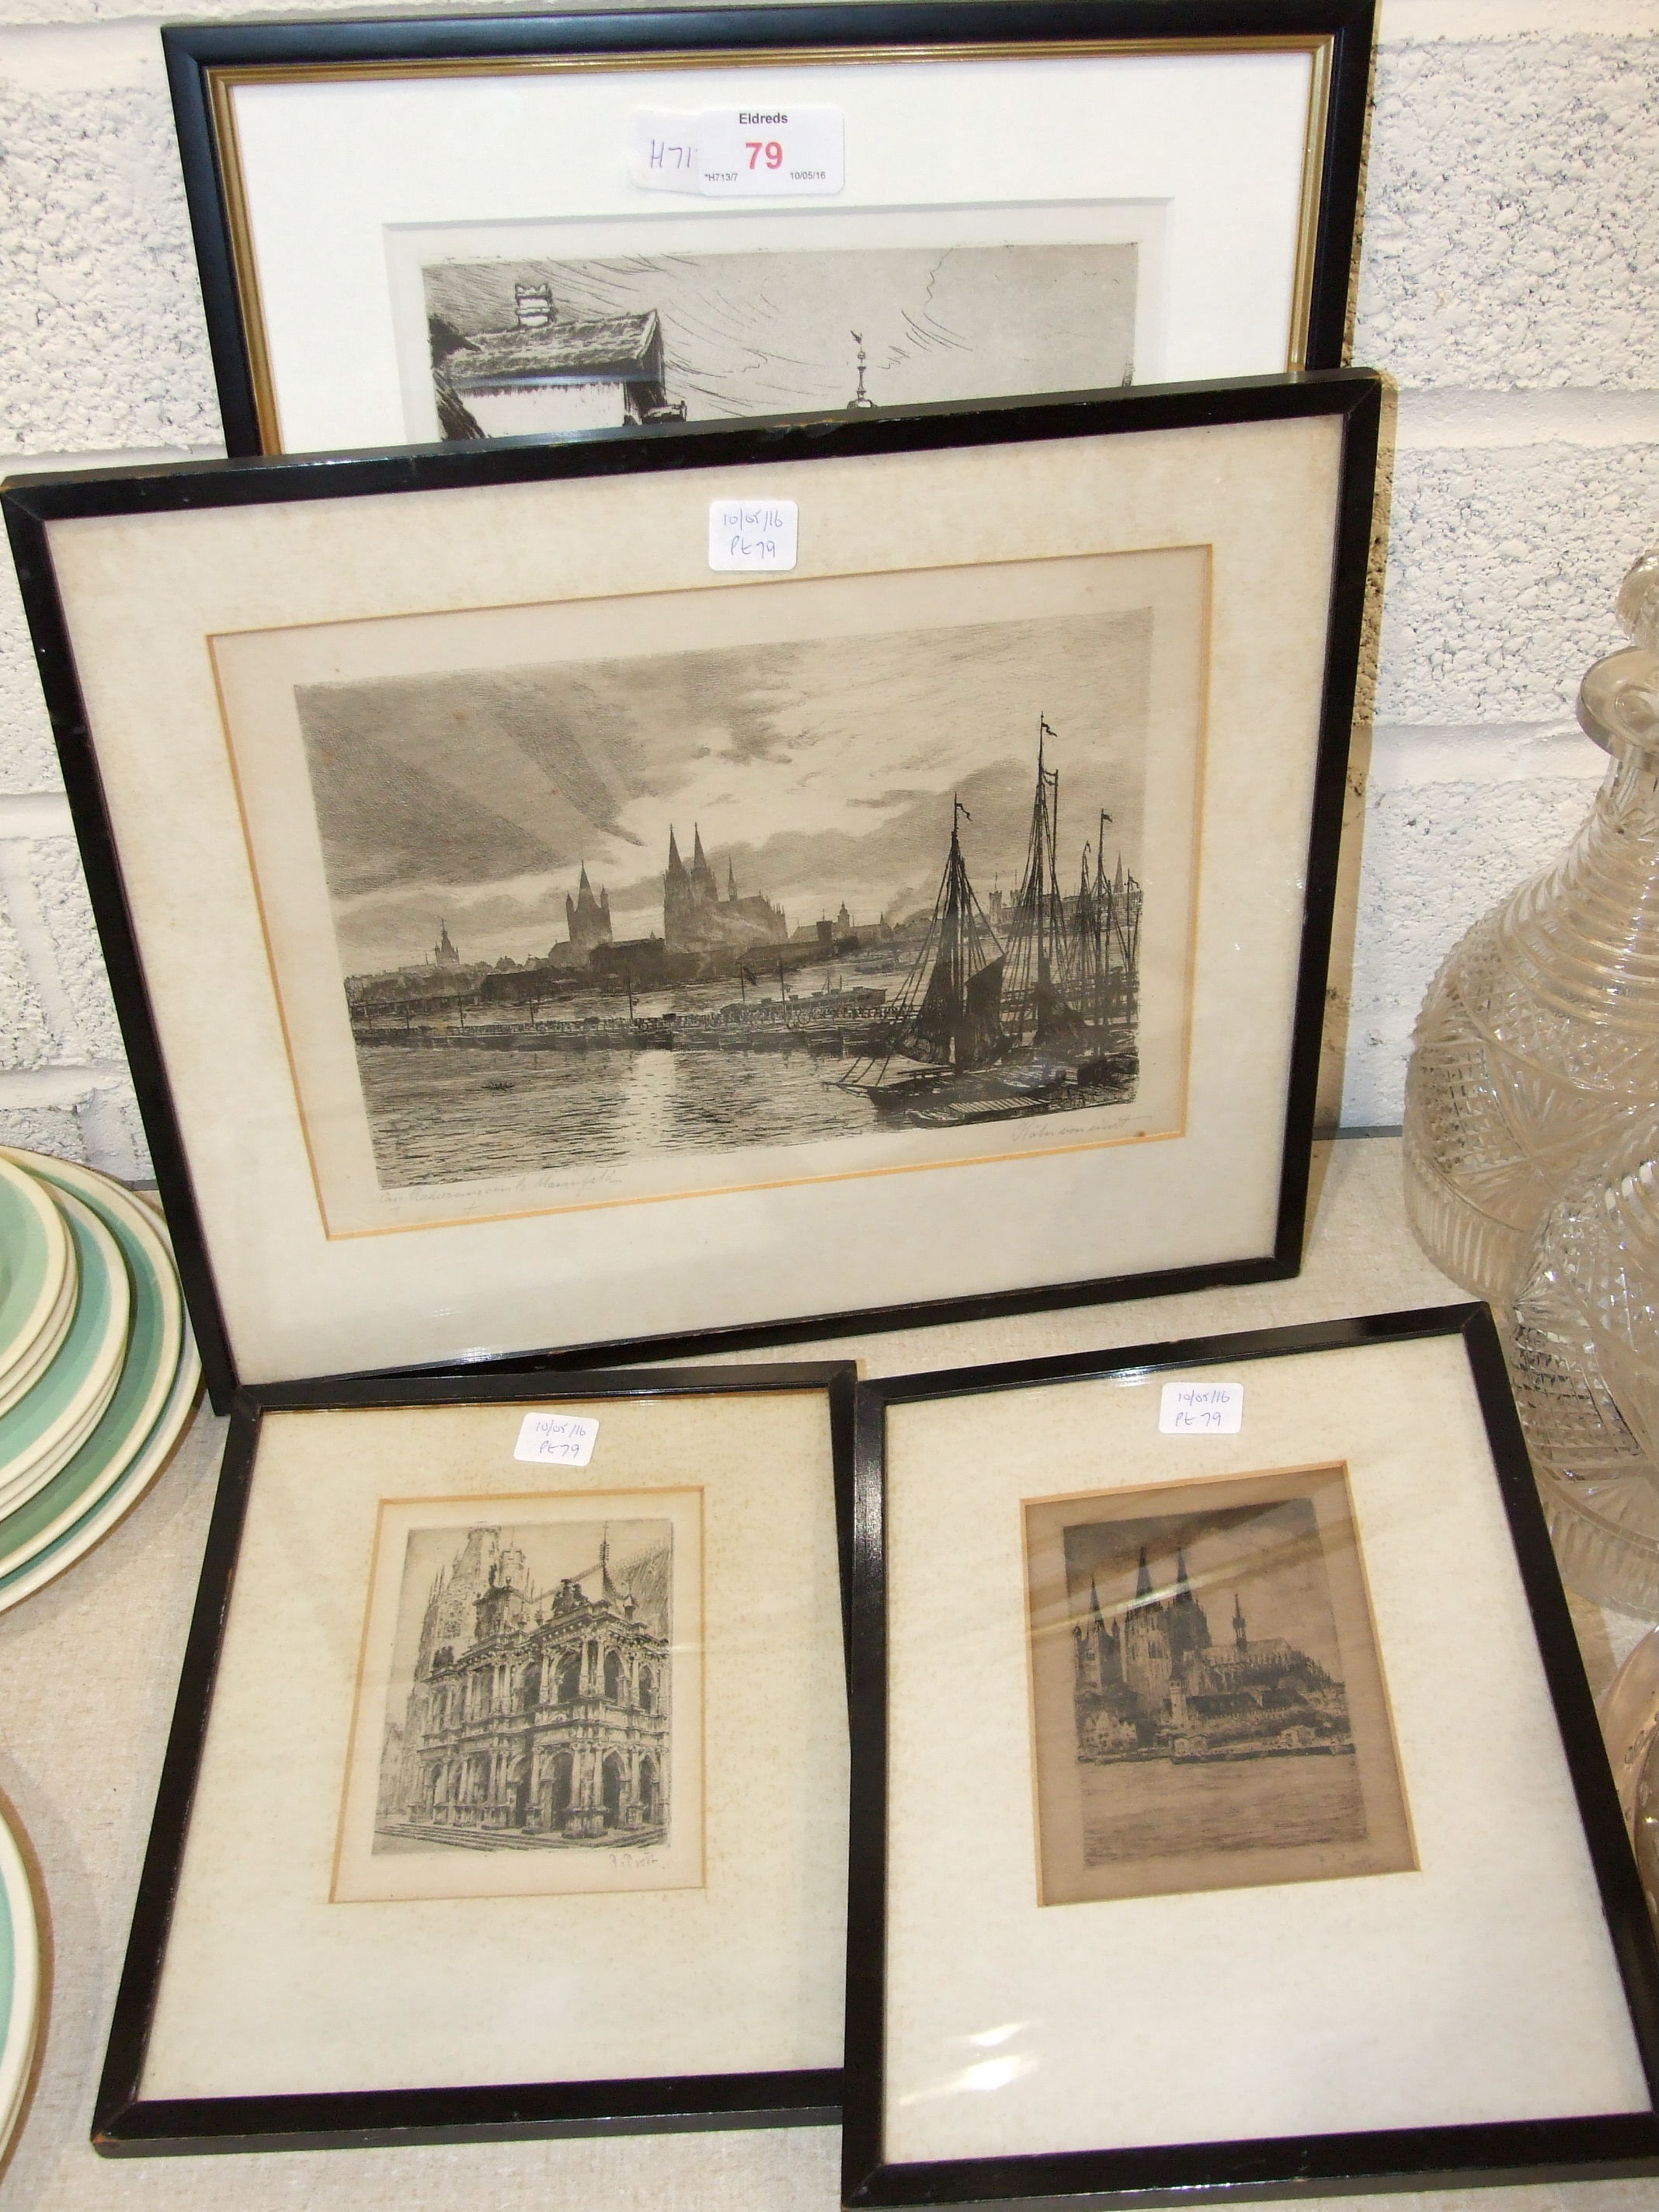 Lot 29 - After Labo......., 'Henkersteg in Nurnberg', a framed etching, indistinctly signed in margin, 36 x